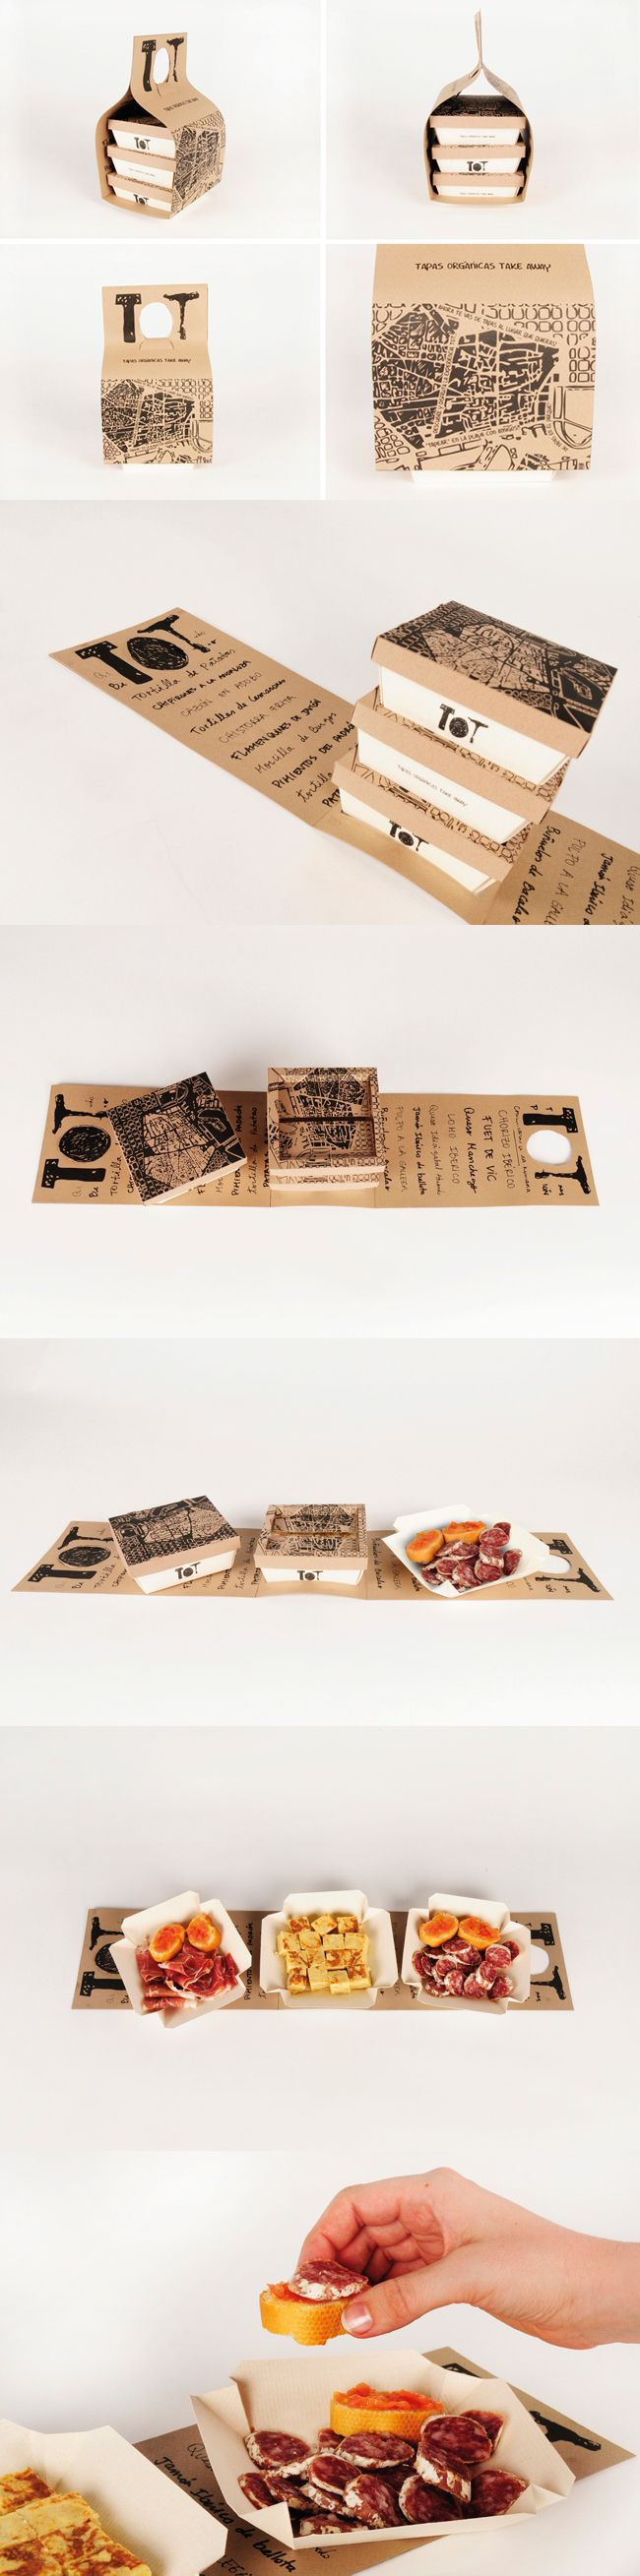 TOT Take-Away (Student Work) Designed by Gloria Kelly, student of Elisava, Barcelona/ Spain.